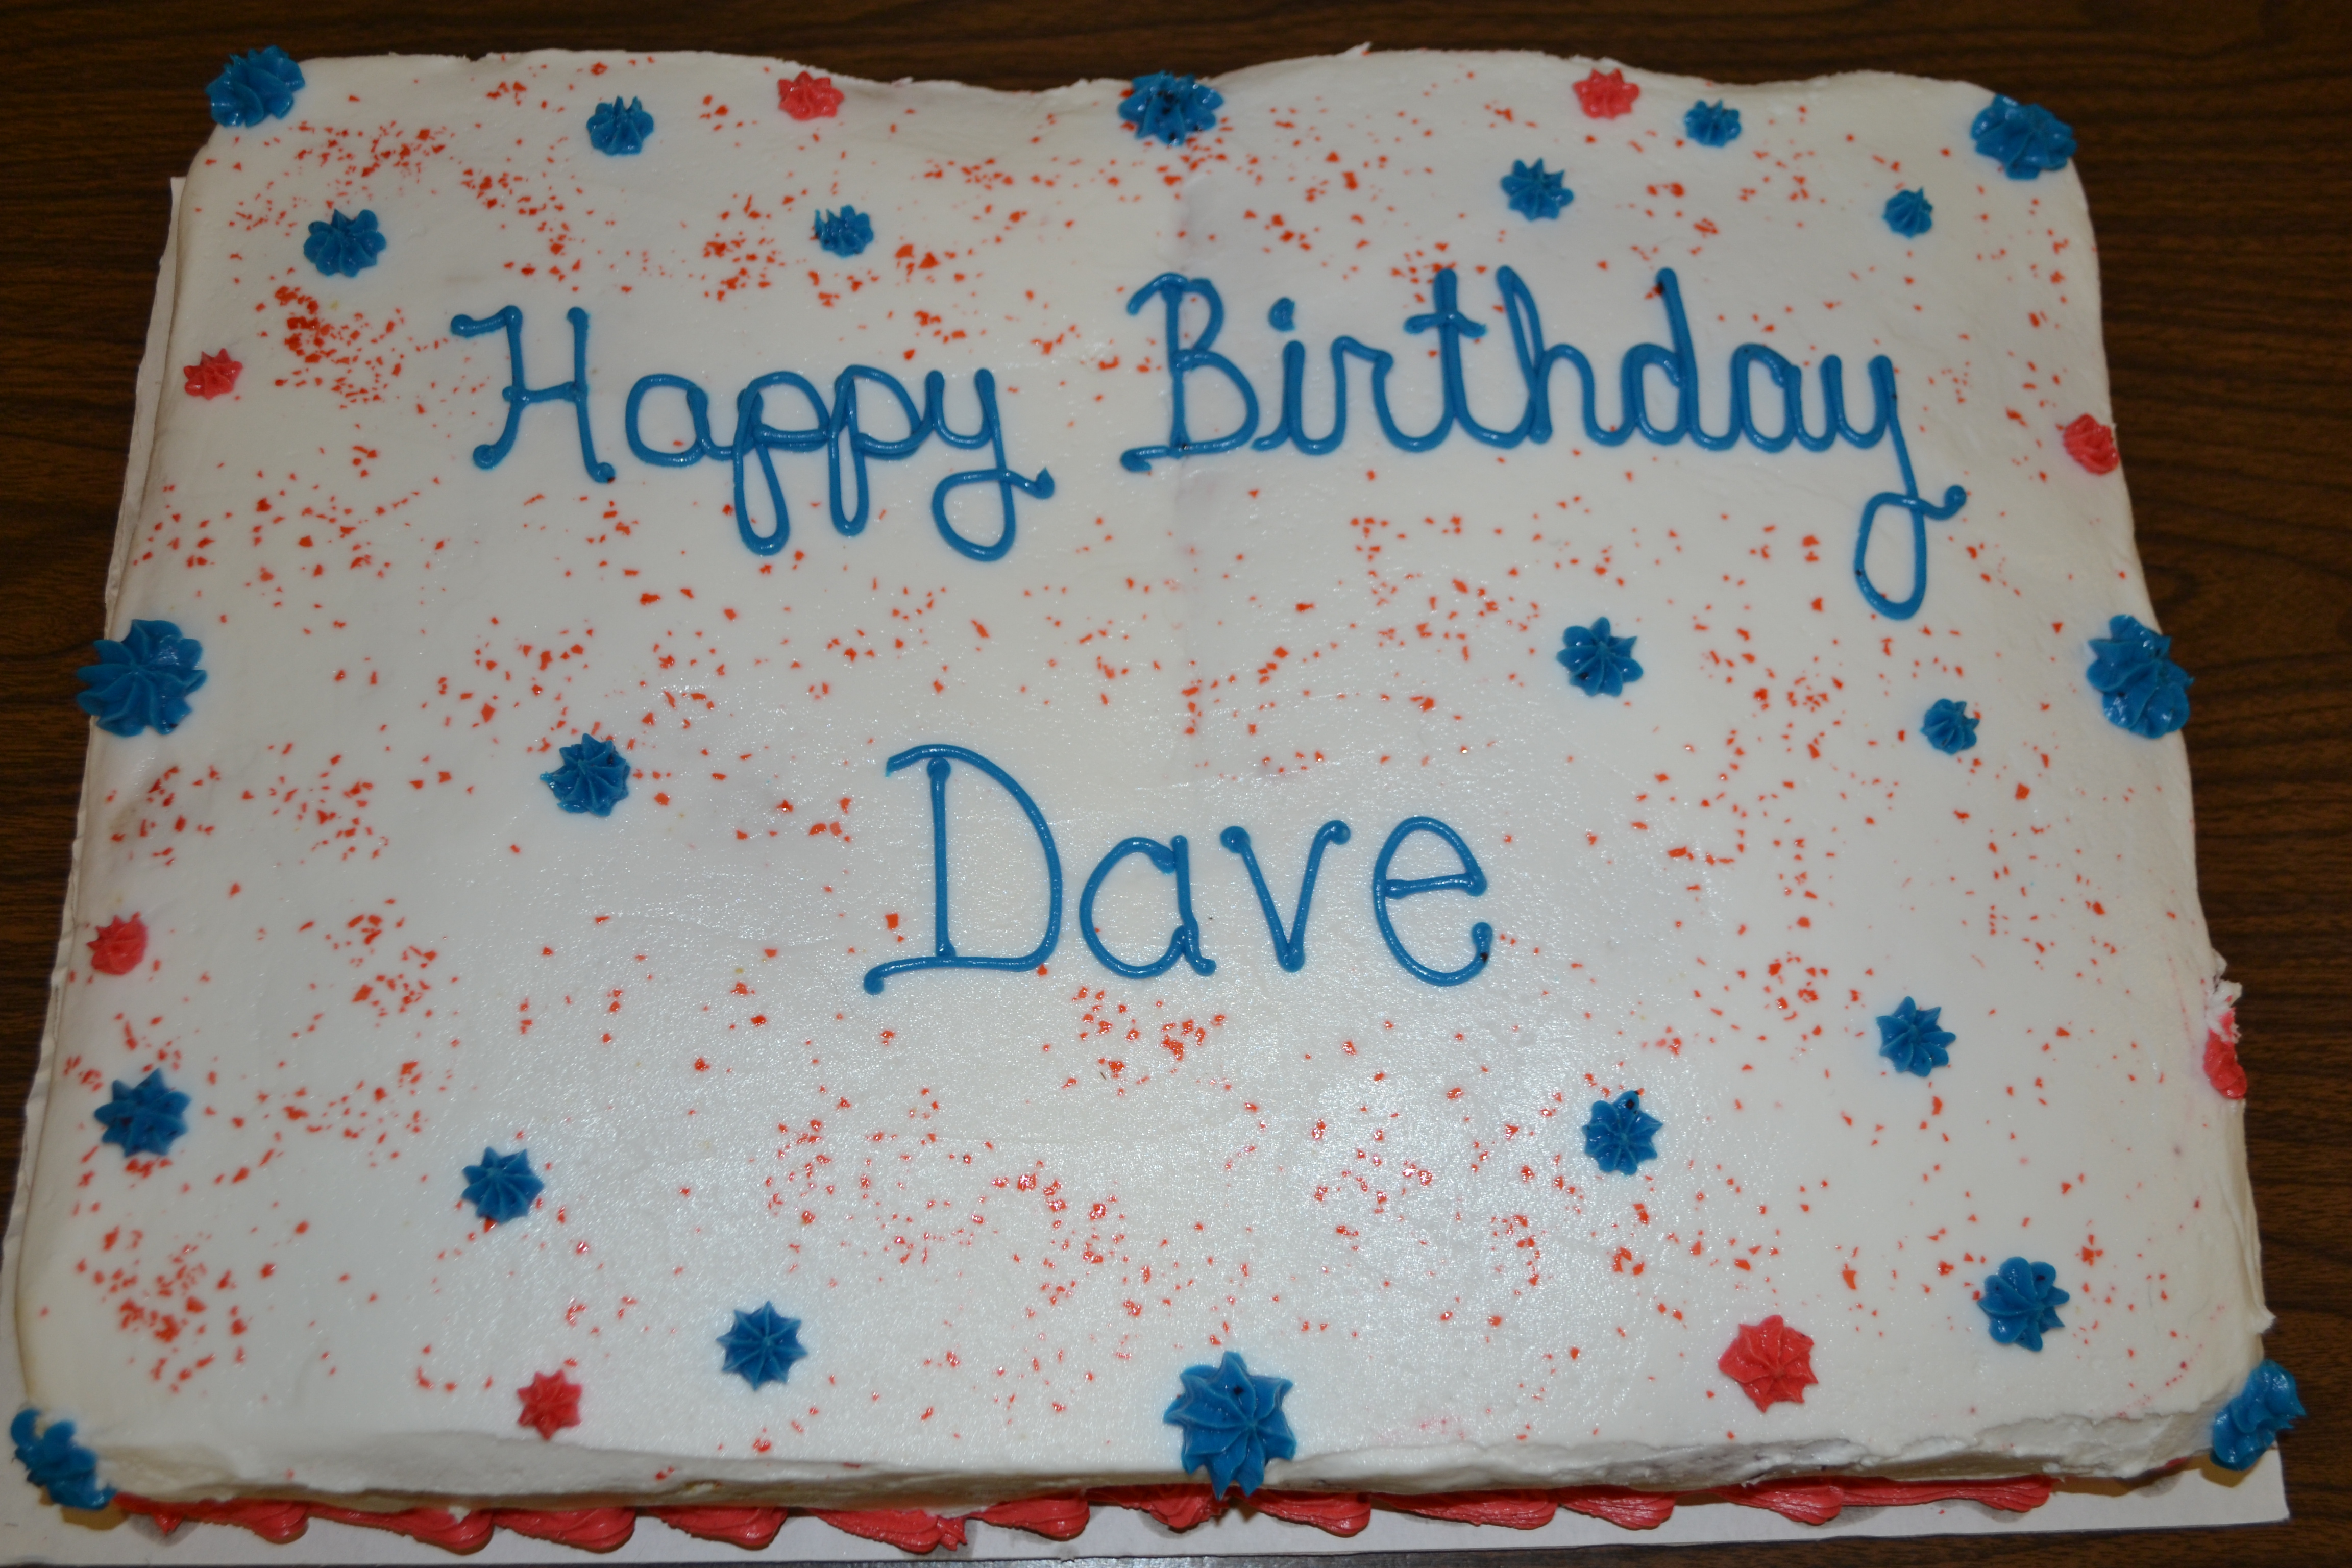 Happy Birthday David The Hope Center Of Hagerstown